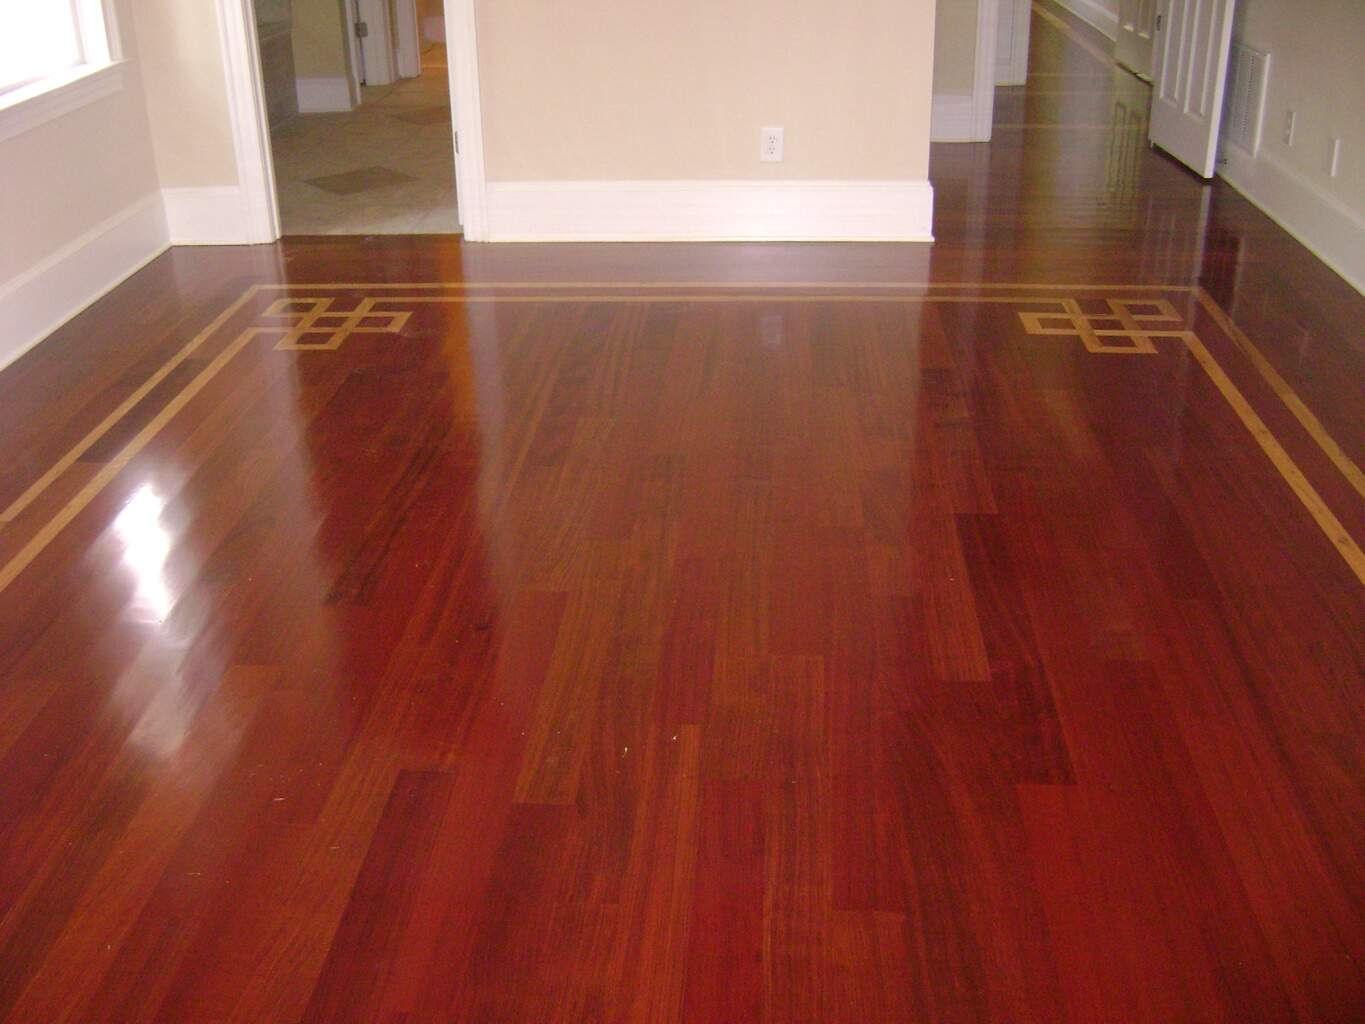 Wood Floor Inlay Long Island Ny Refinish Restore Hardwoods